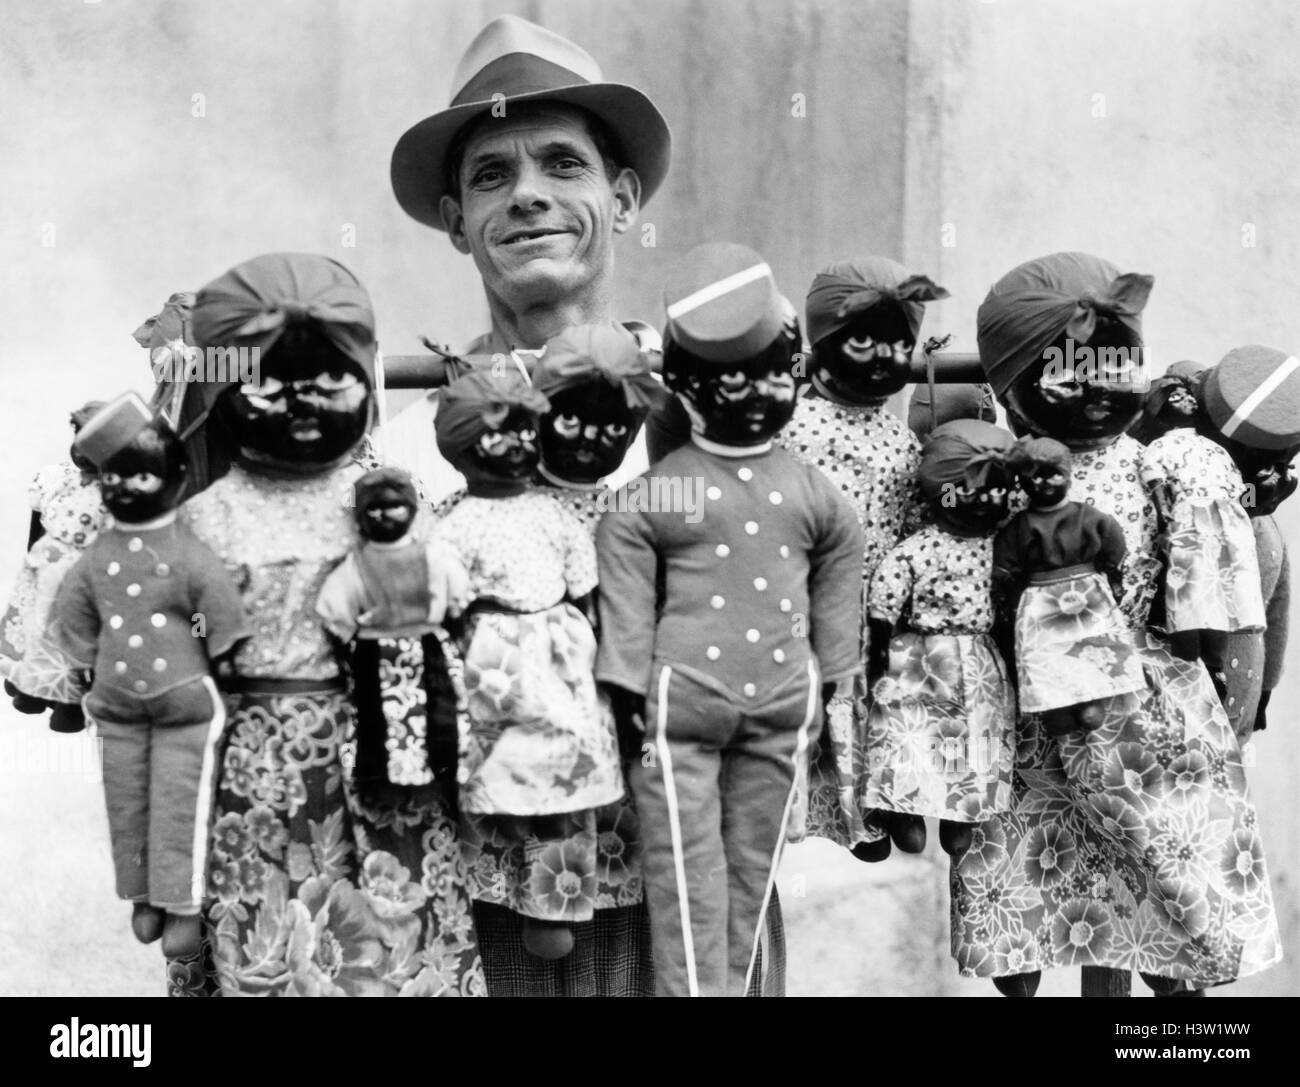 1930s 1940s WHITE STREET VENDOR LOOKING AT CAMERA SELLING BLACK FACED DOLLS HAVANA CUBA - Stock Image